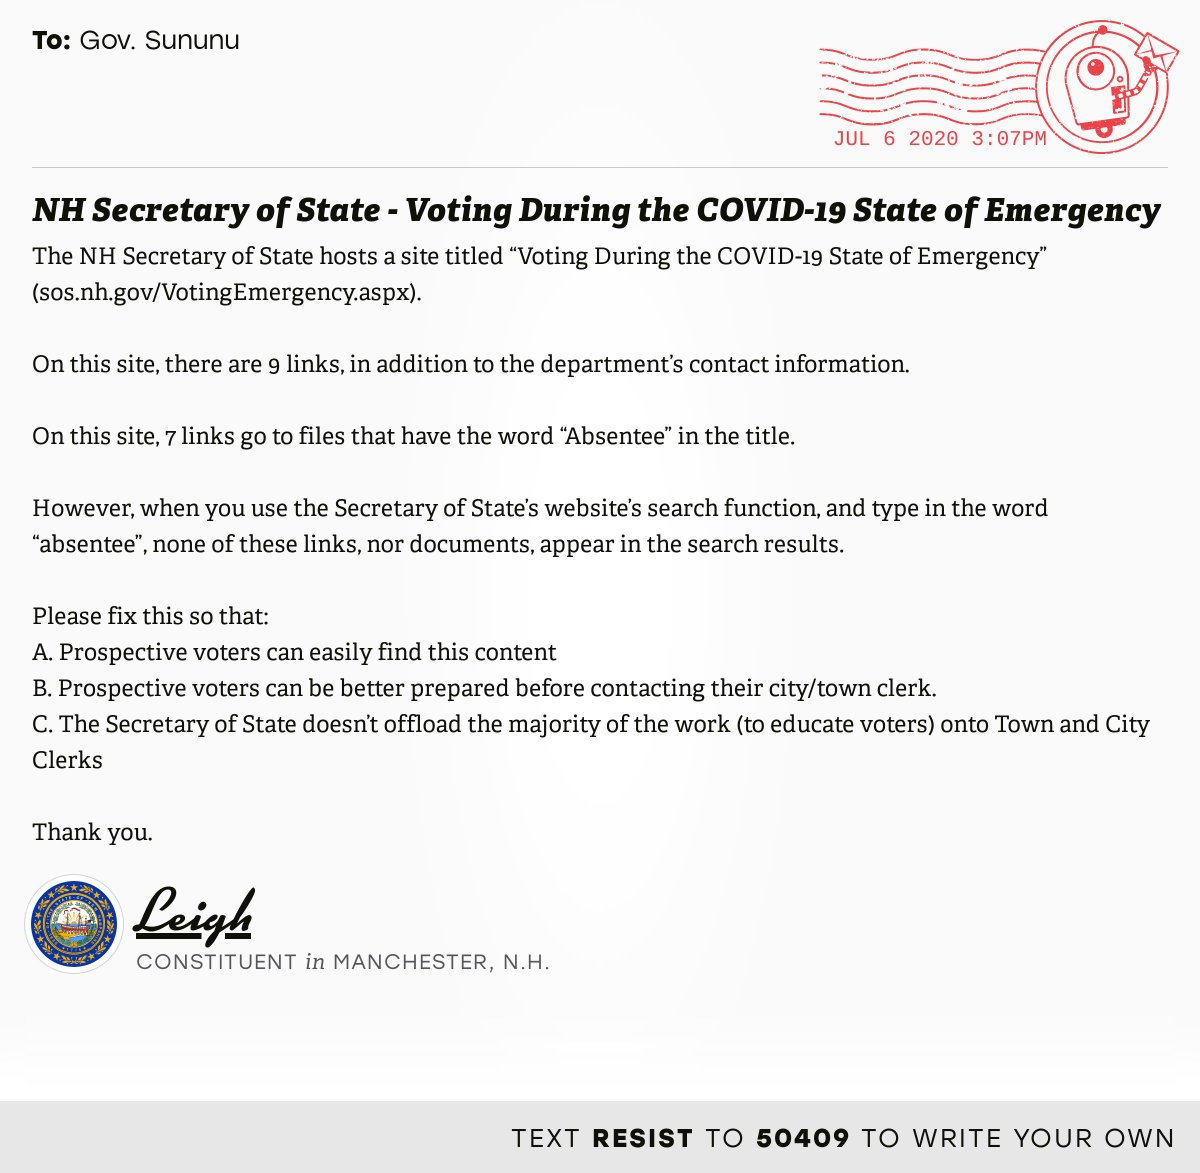 """📬 I delivered """"NH Secretary of State - Voting During the COVID-19 State of Emergency"""" from Leigh, a constituent in Manchester, N.H., to @GovChrisSununu  #NHpolitics #fitn #VoteByMail  📝 Write your own:"""